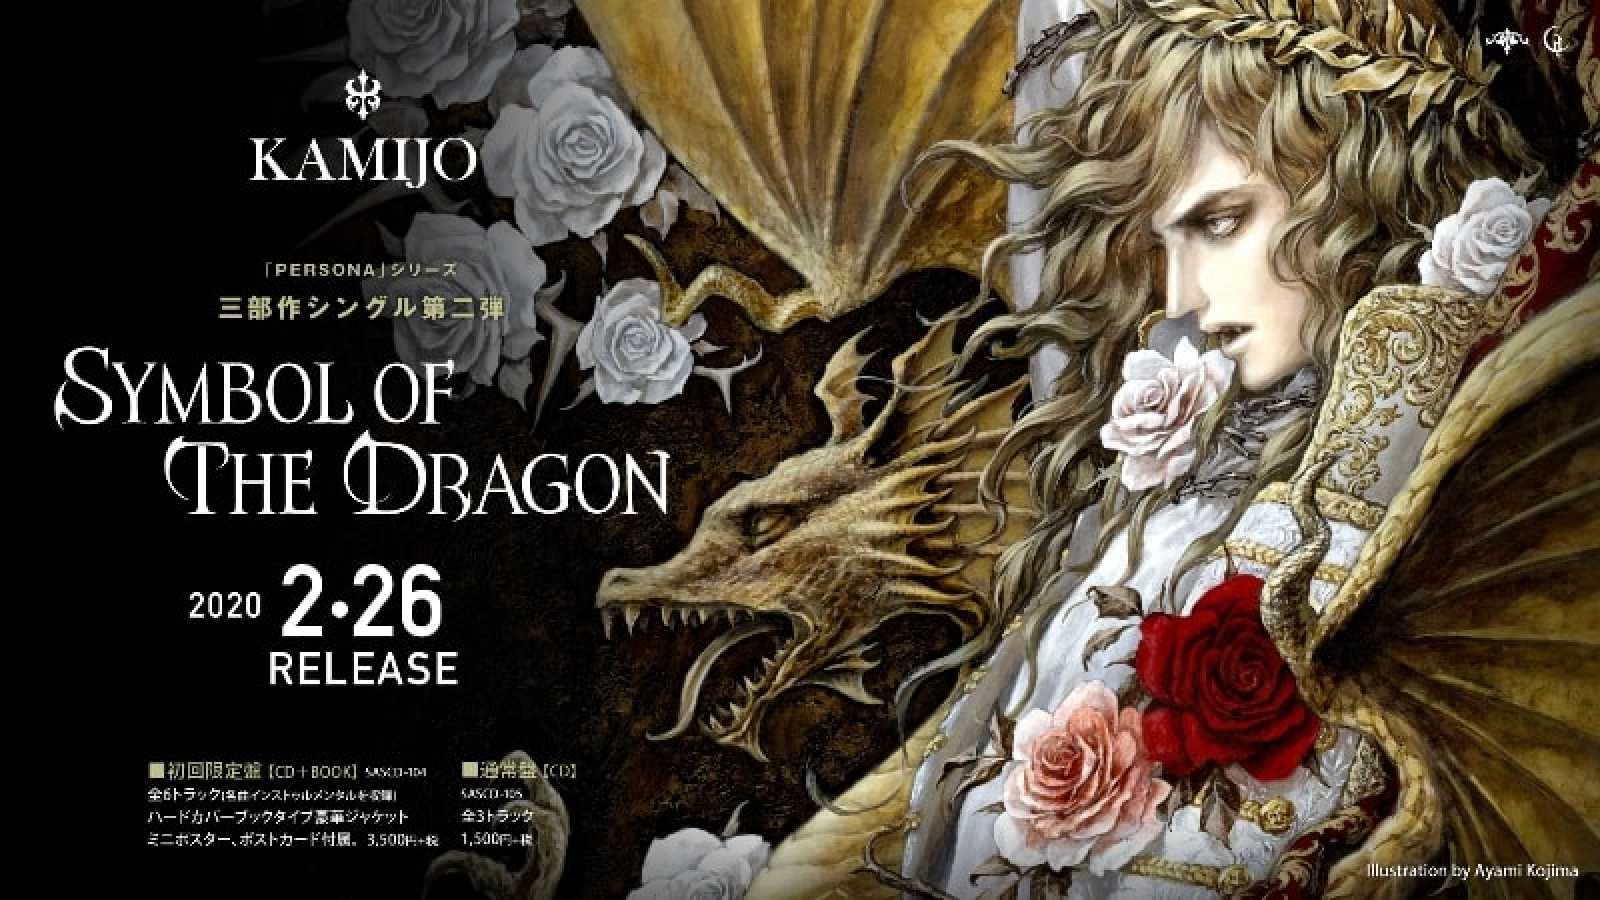 KAMIJO anuncia nuevo single © CHATEAU AGENCY CO., Ltd. All rights reserved.